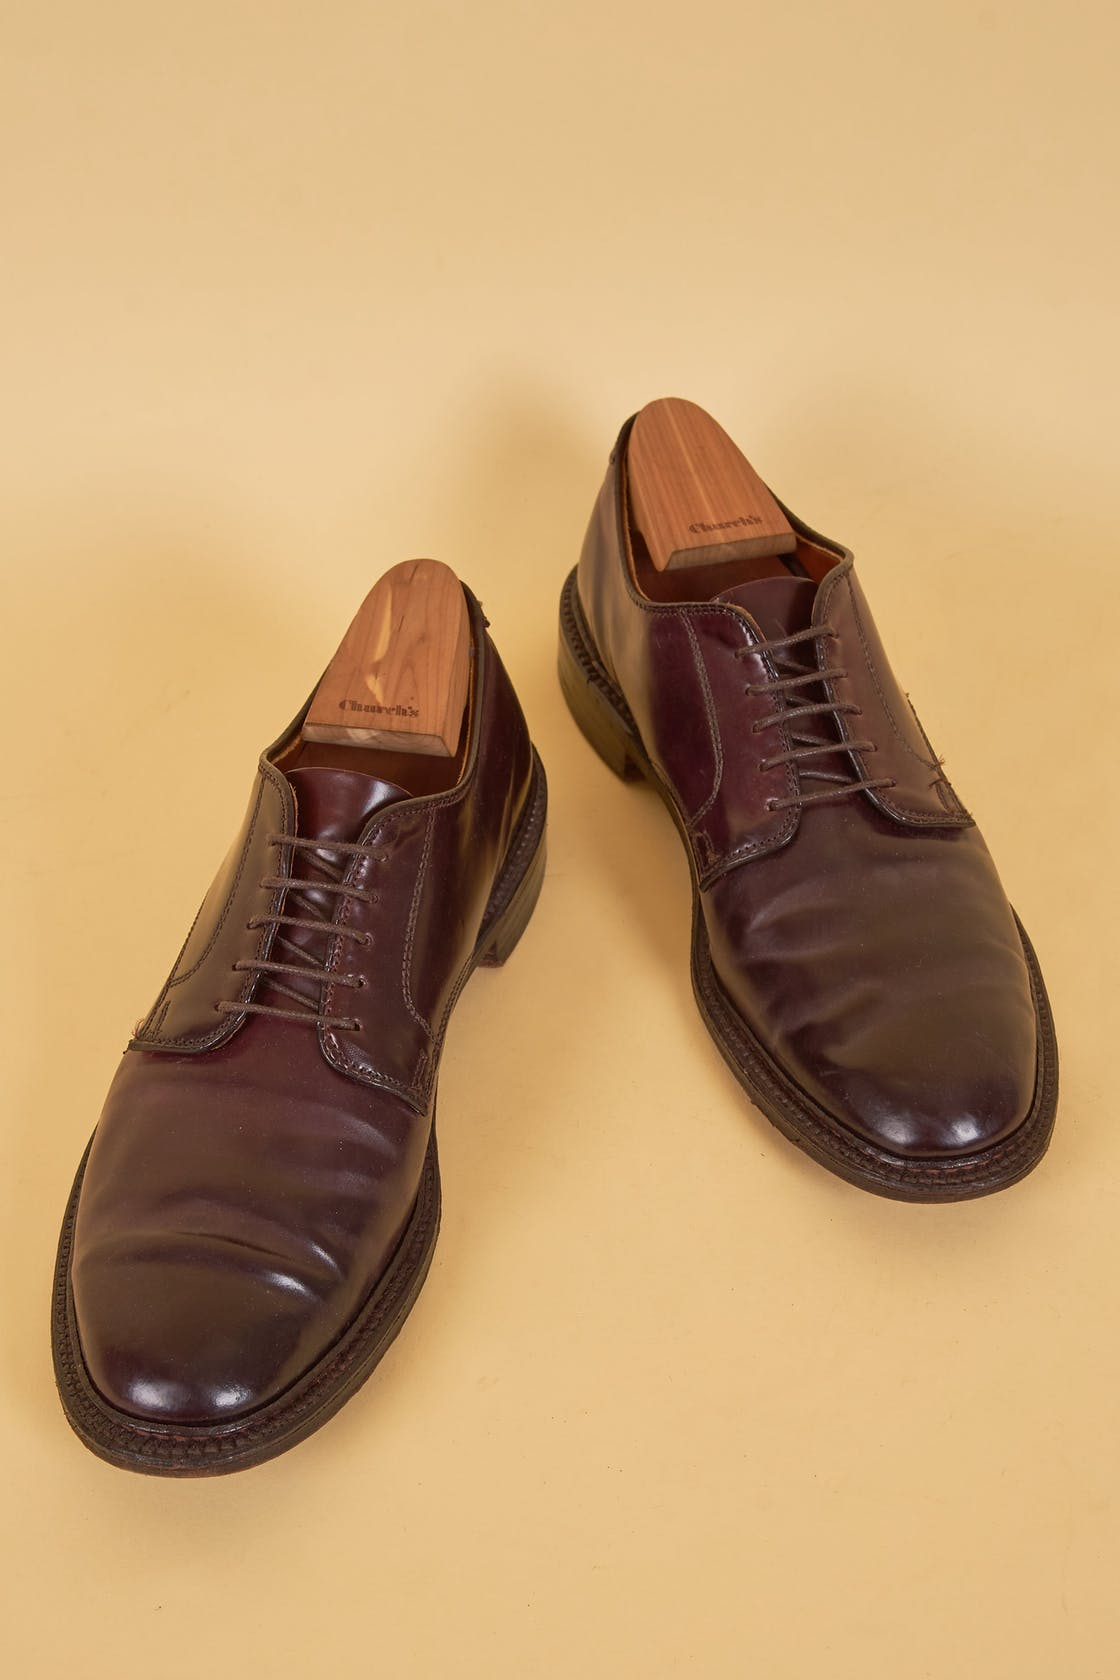 Alden Deep Purple Cordovan Derby Shoes